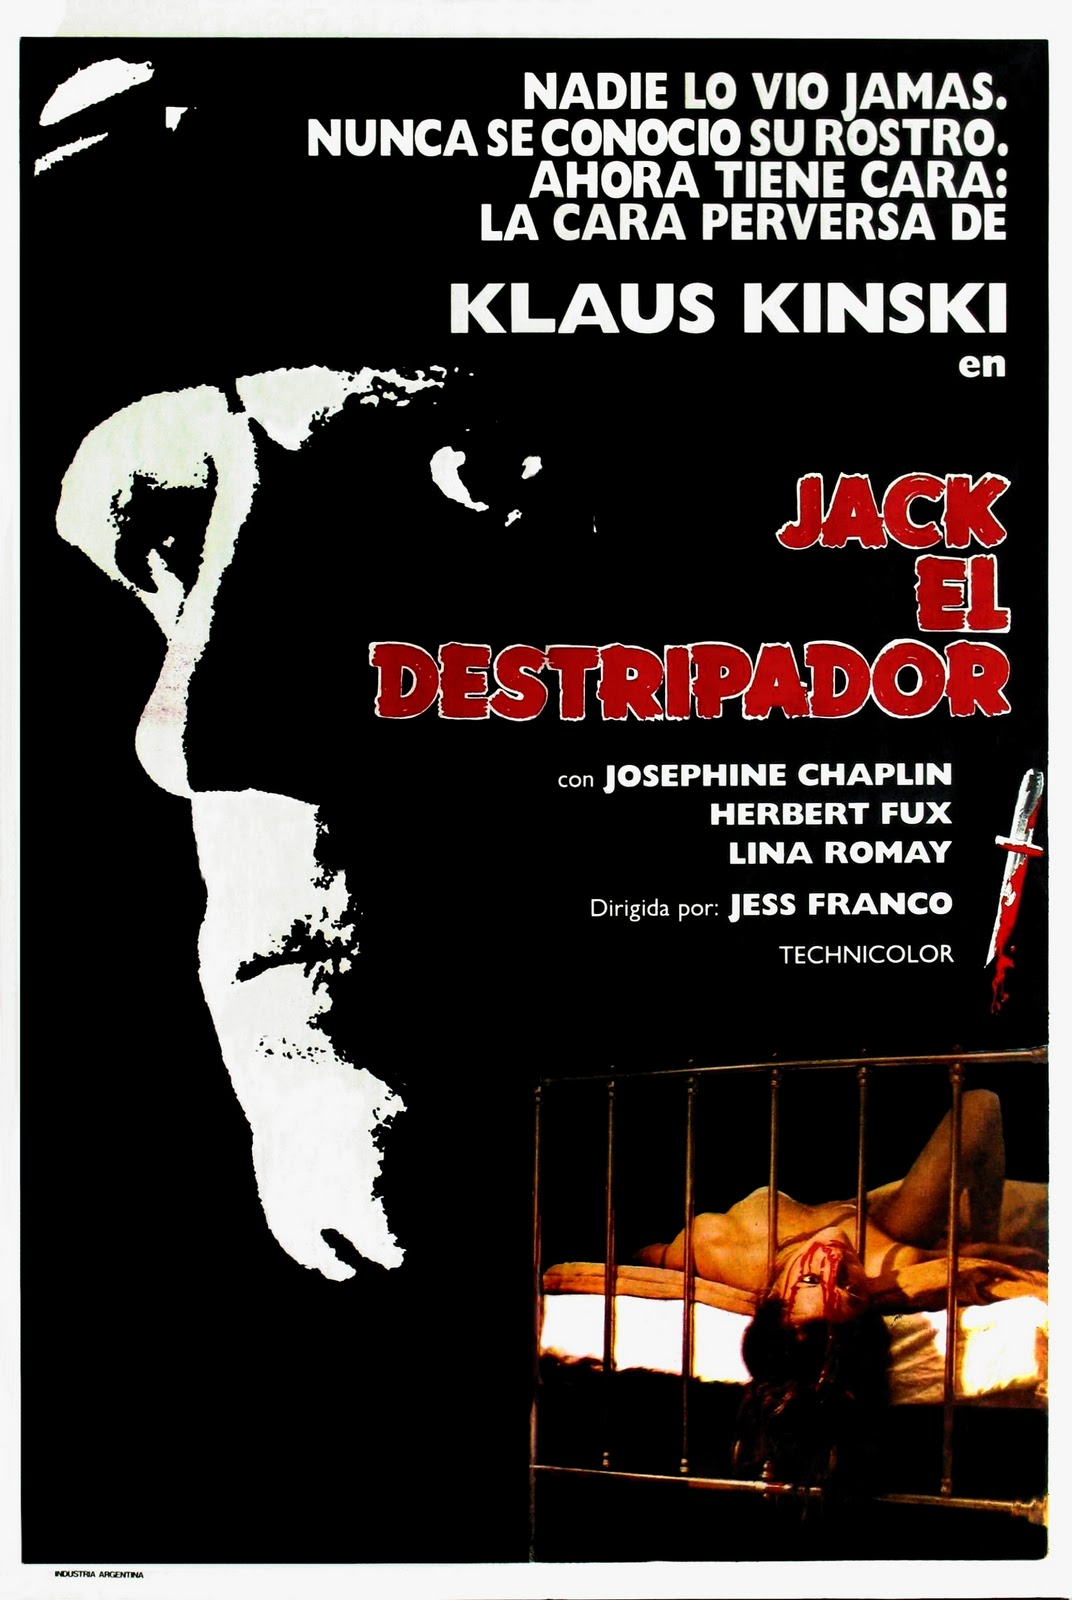 Jack The Ripper 1976 Movie Poster Starring Klaus Kinski